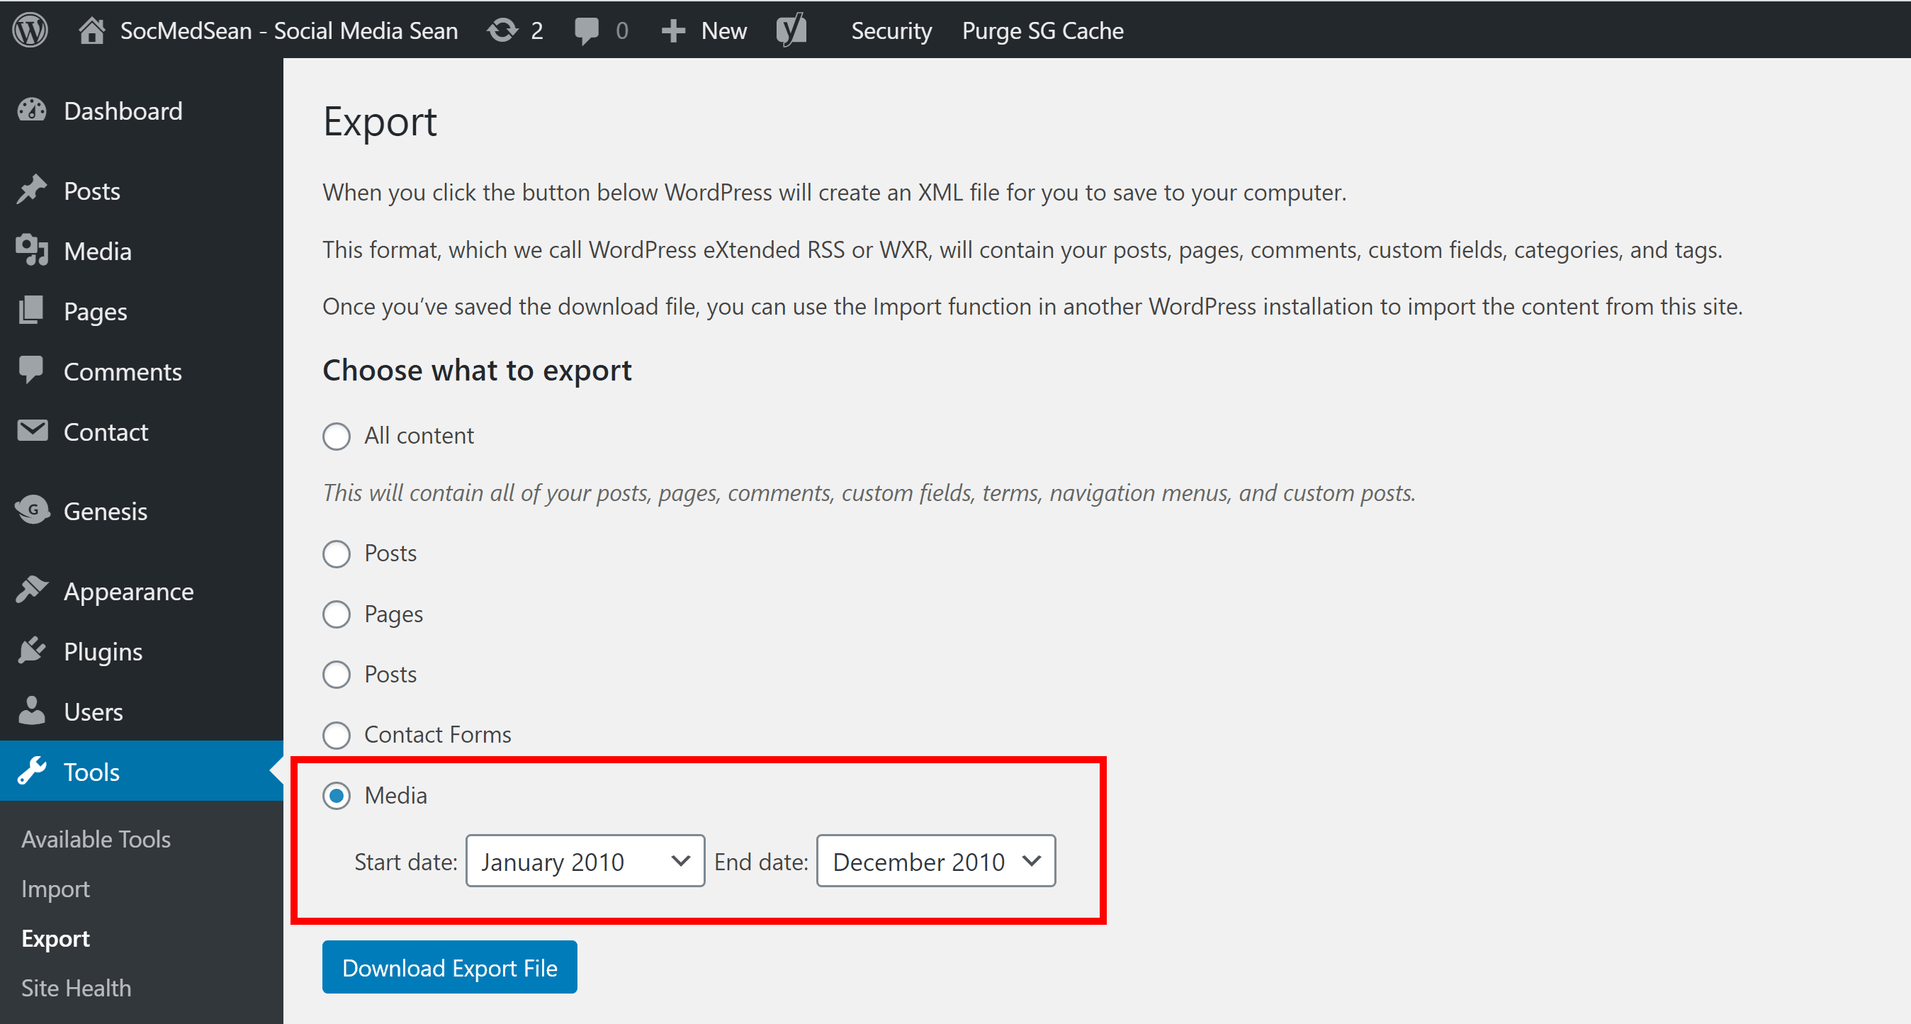 Use the WordPress export tool to create an XML file for your media library objects.